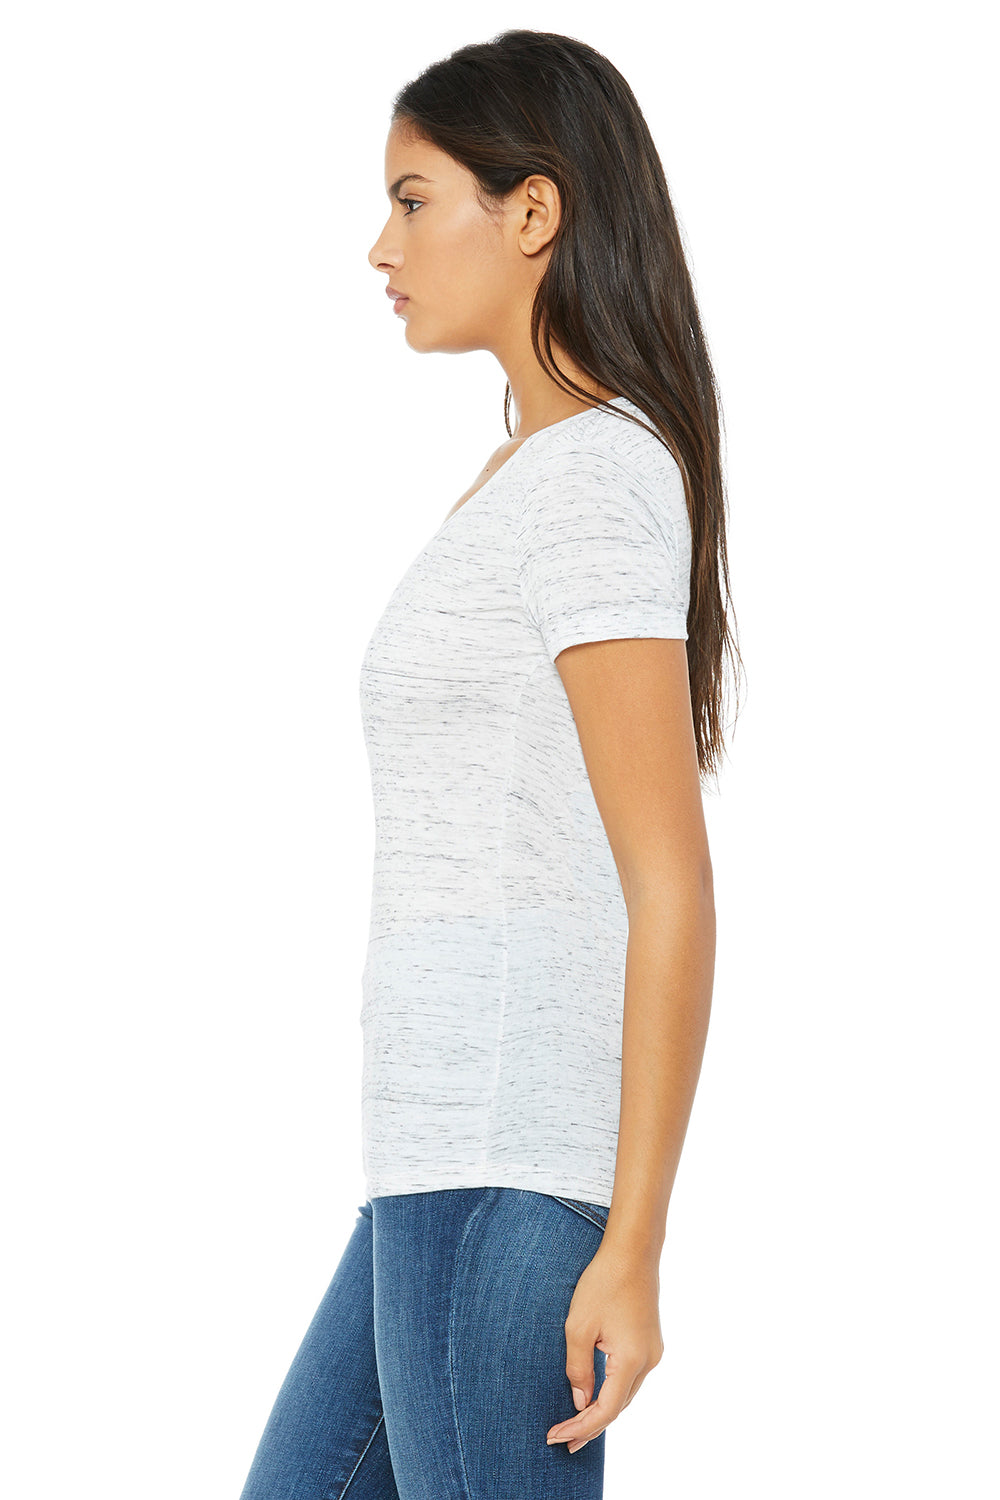 Bella + Canvas B6035 Womens Jersey Short Sleeve Deep V-Neck T-Shirt White Marble Side